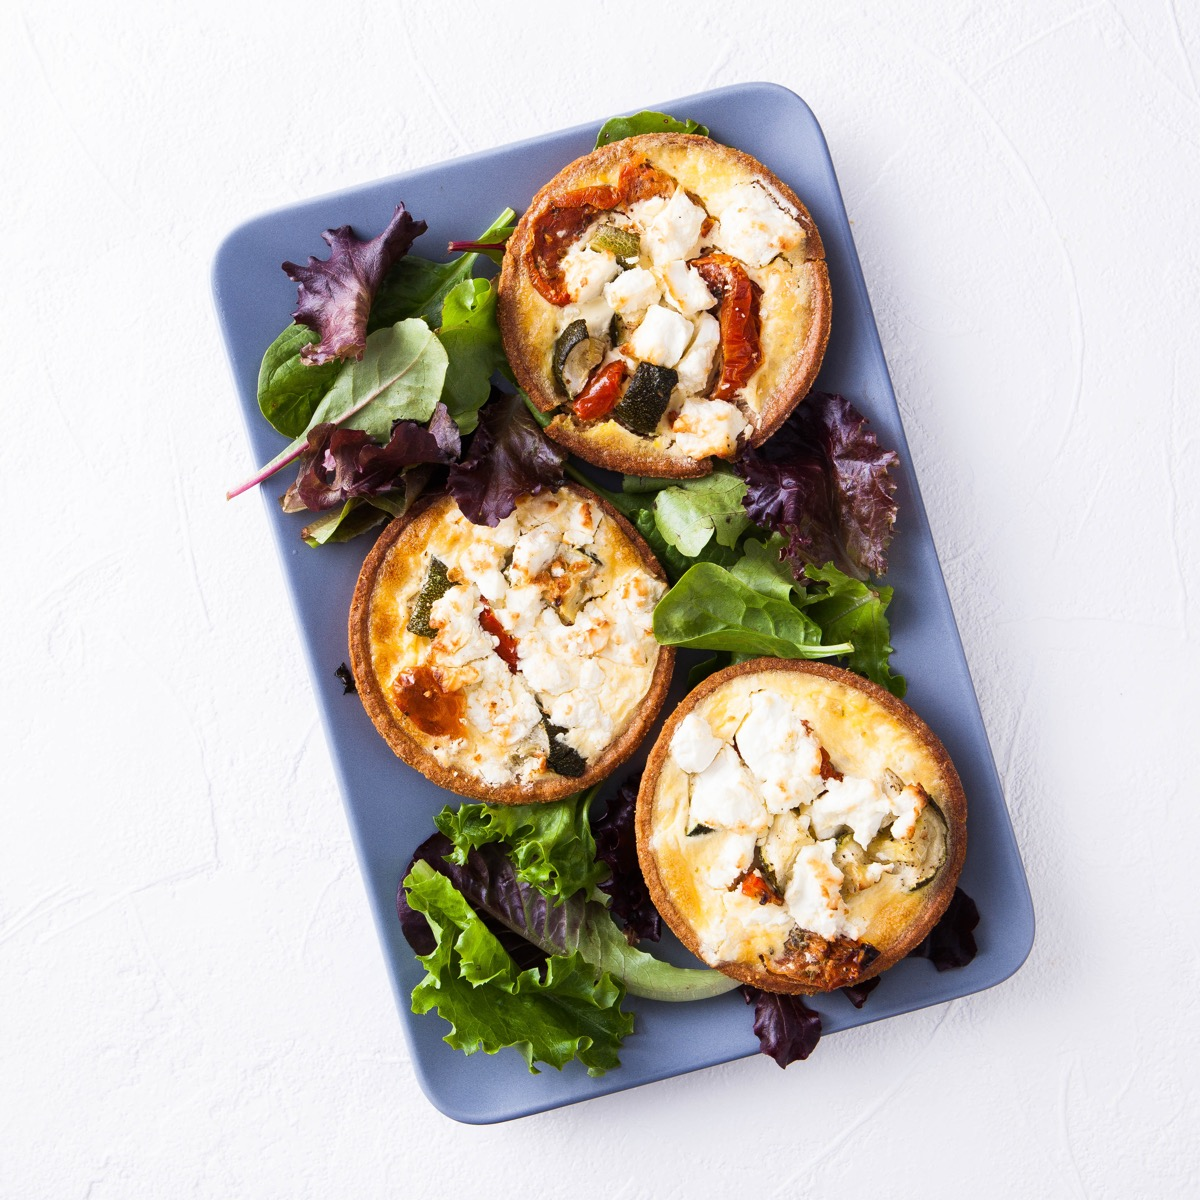 Individual Savoury Tartlet - Sundried Tomato, Spinach & Feta Cheese